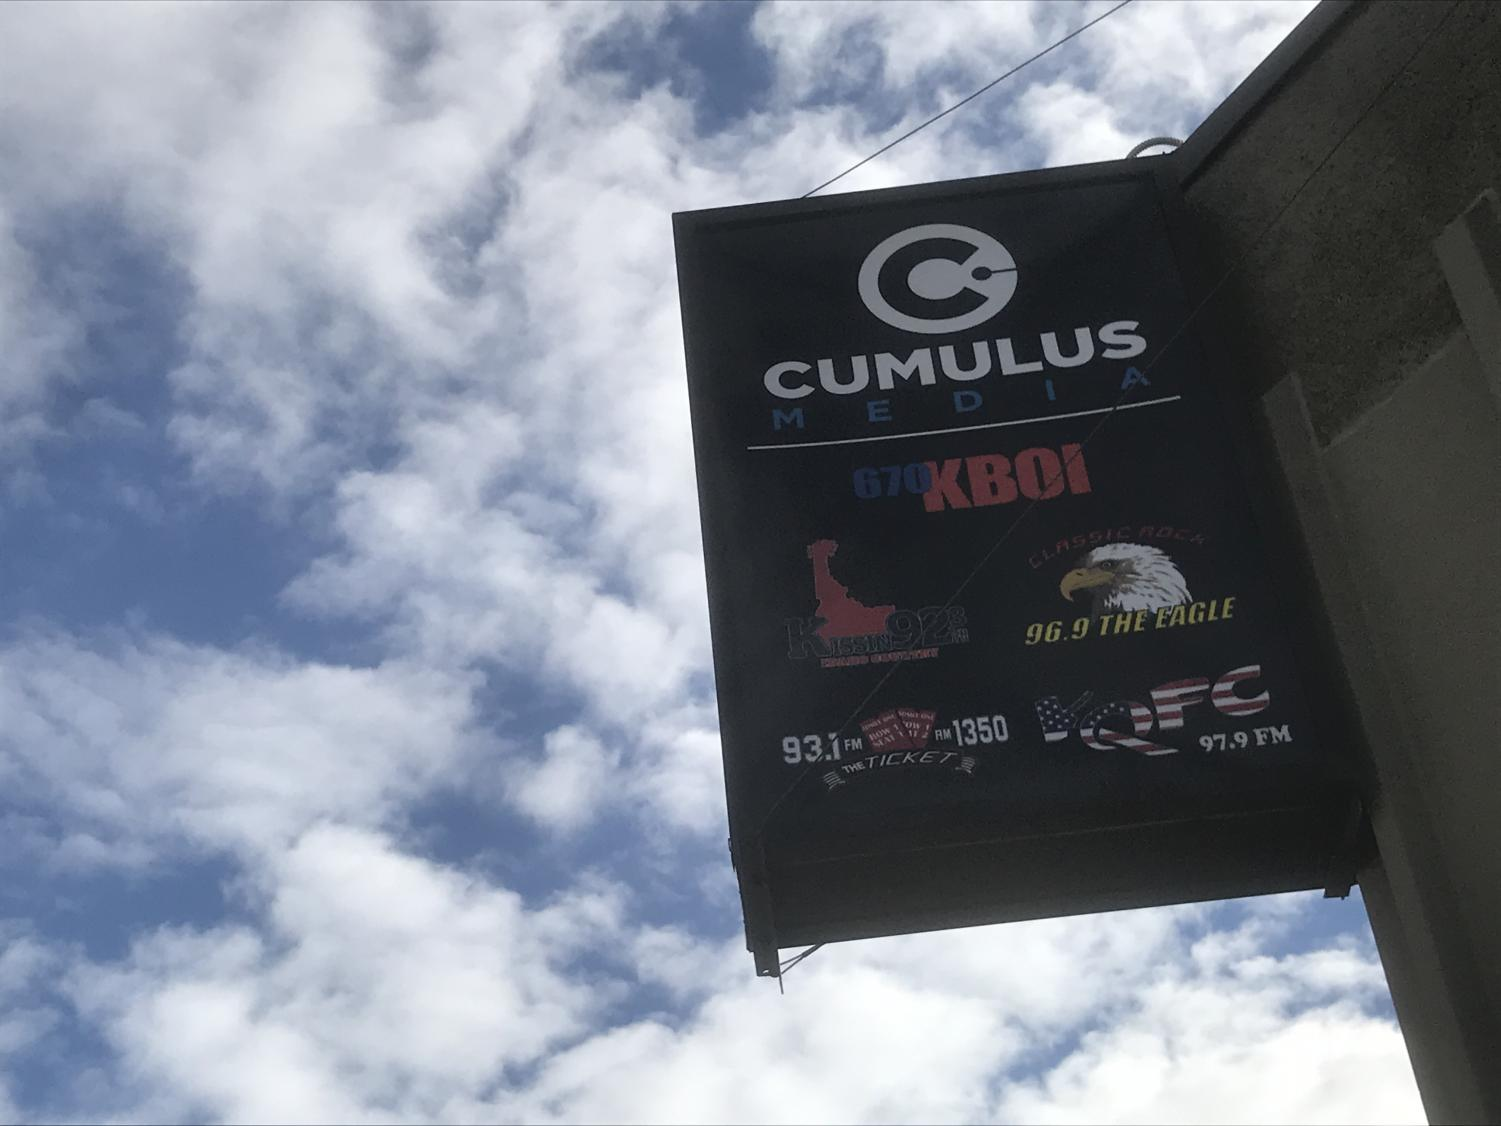 The Cumulus office in downtown Boise that broadcasts local radio stations.